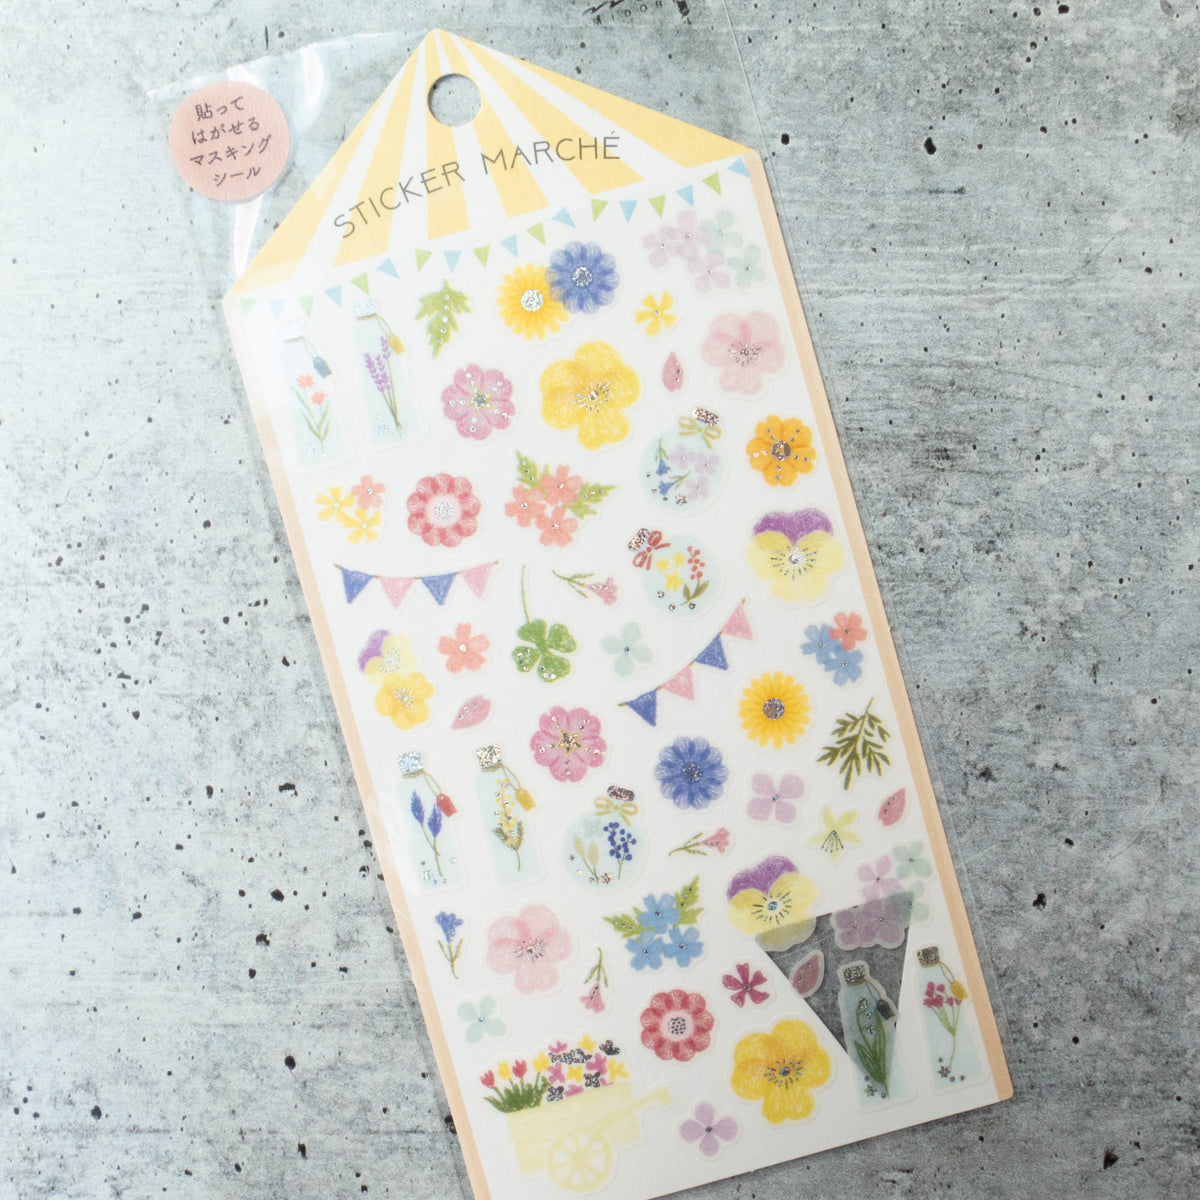 Midori Sticker Marche Stickers - Sparkle Flowers